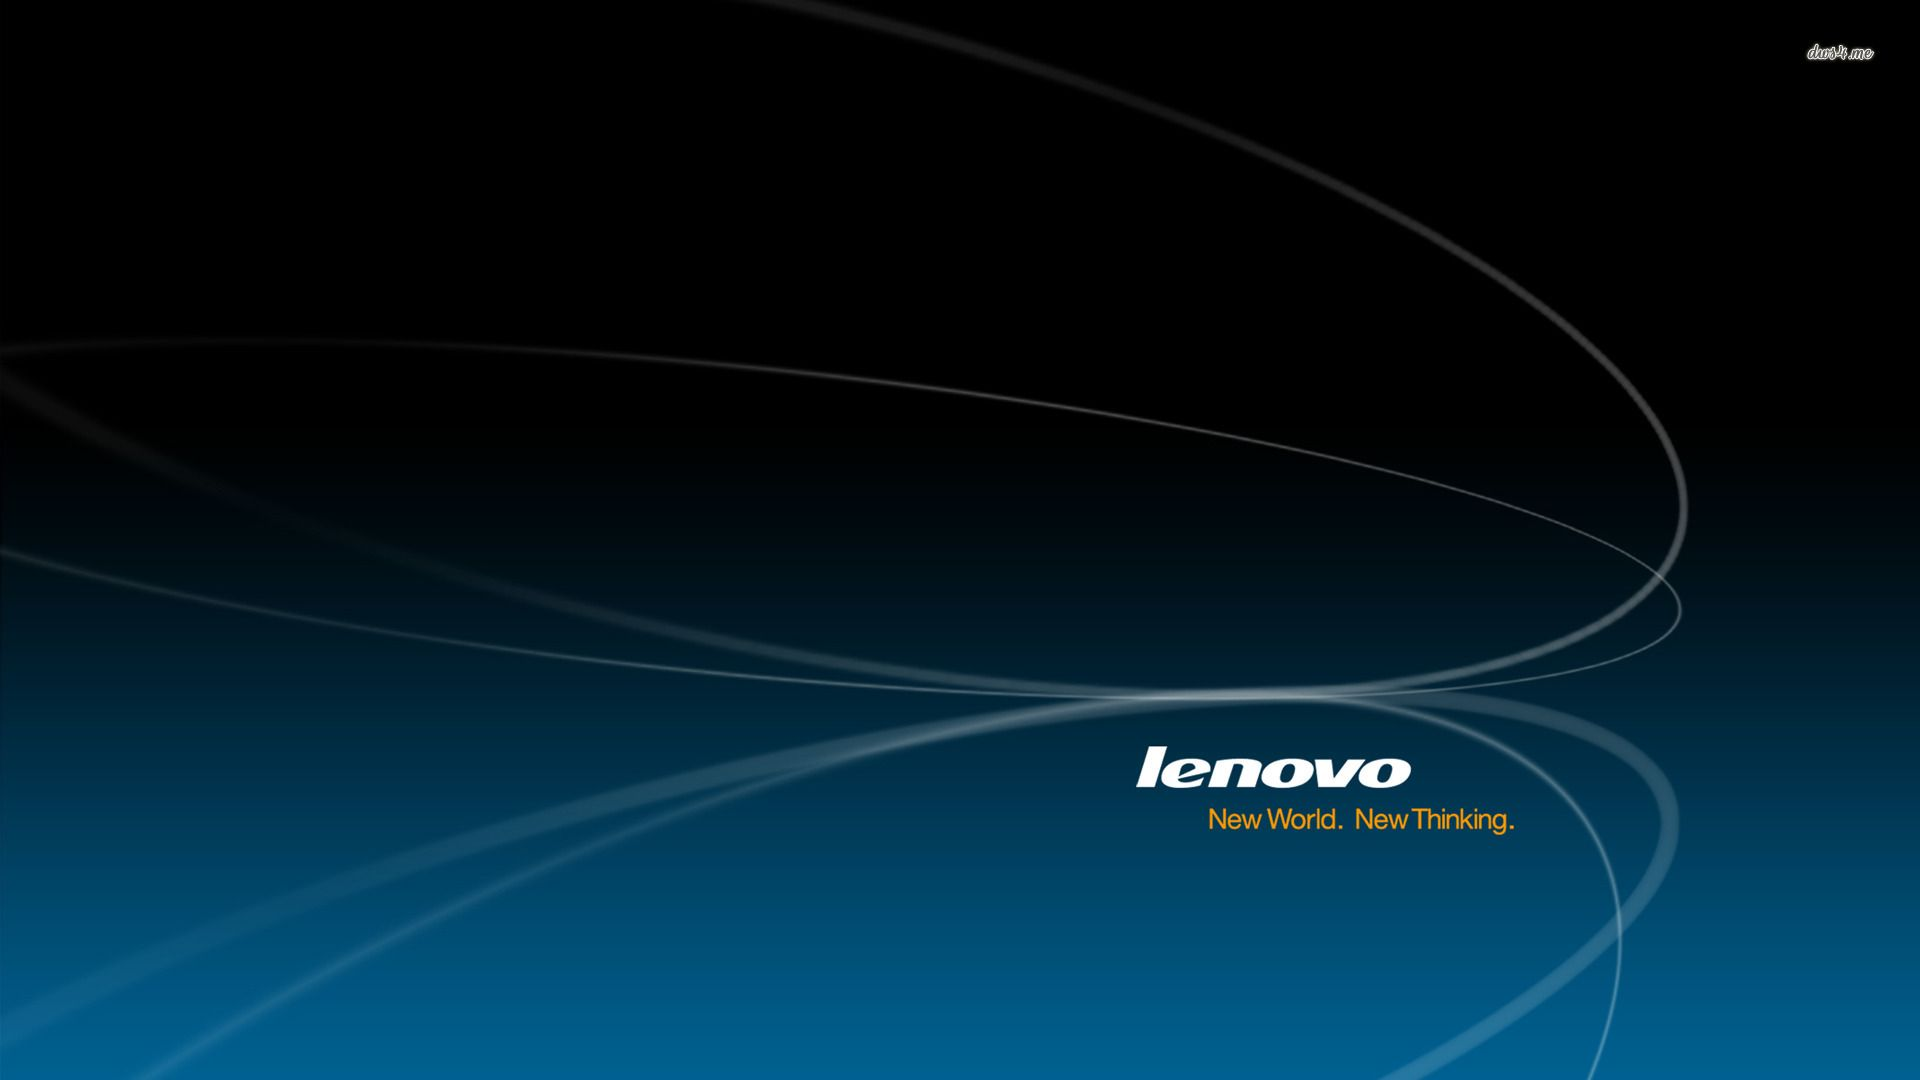 lenovo-wallpaper-windows-7-free-download | akshay kumar | pinterest